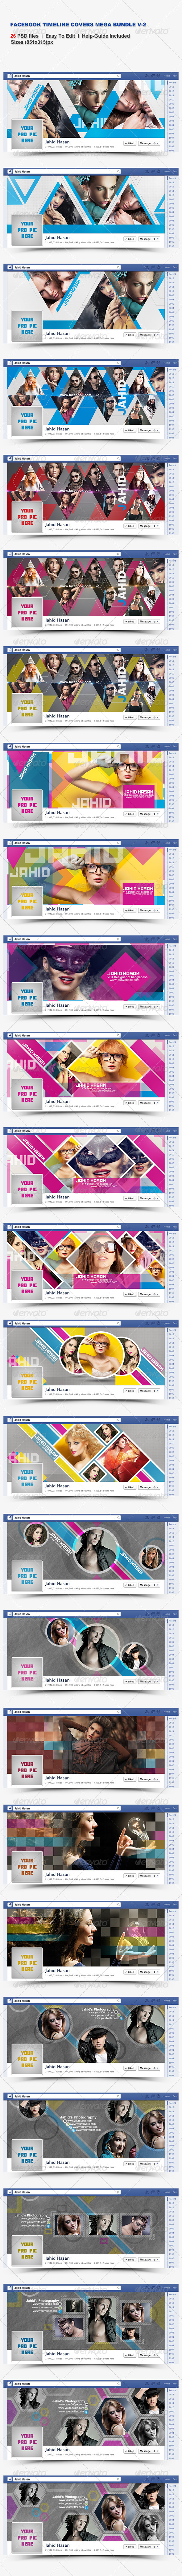 Facebook Timeline Covers Mega Bundle V-2 - Facebook Timeline Covers Social Media